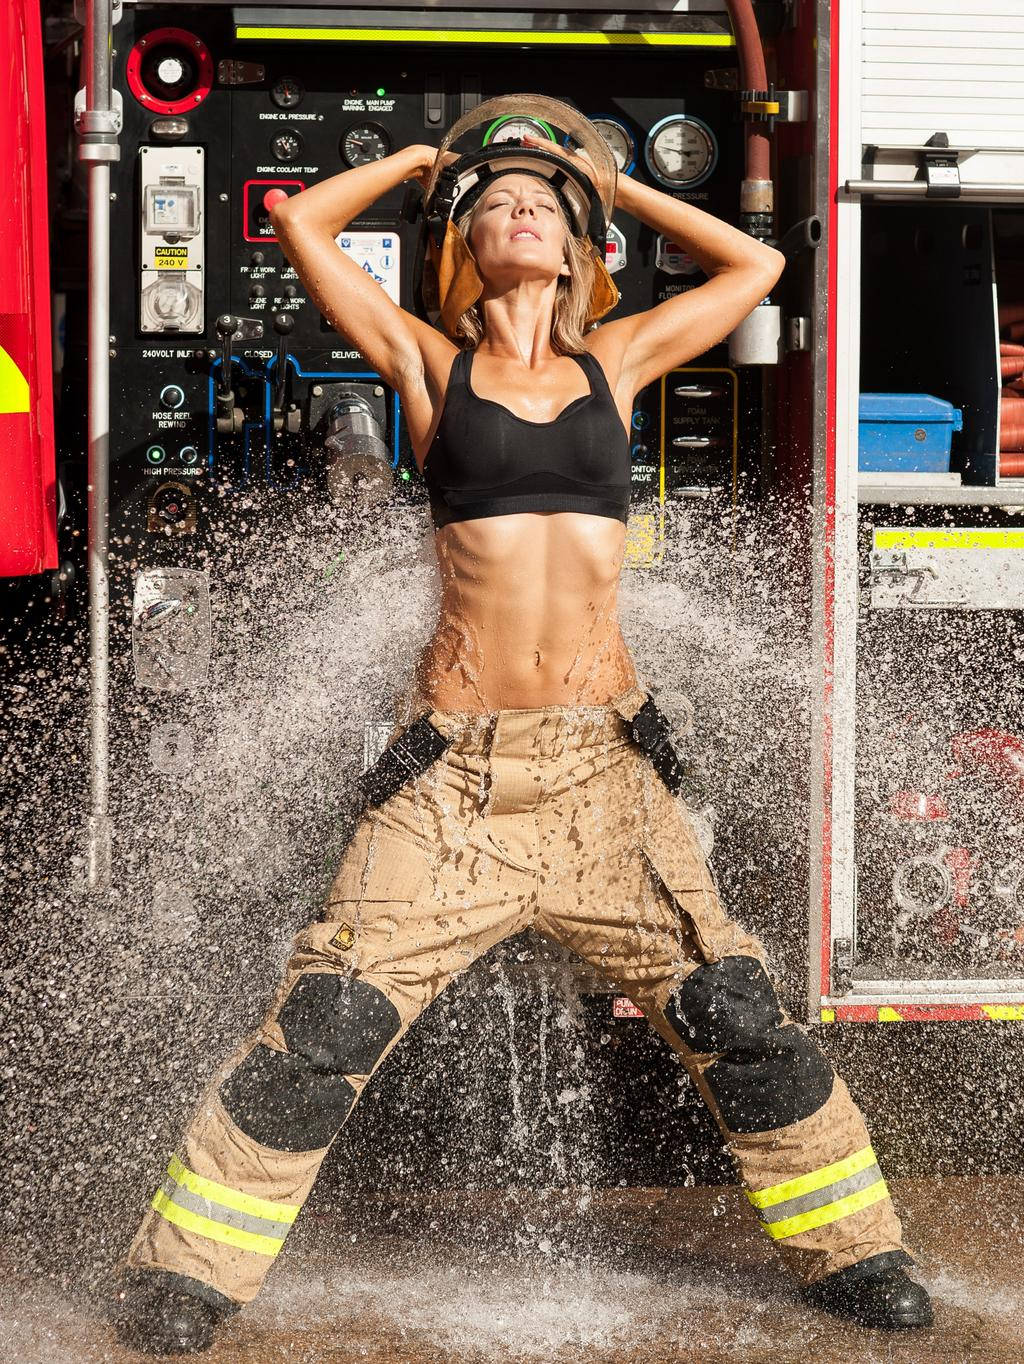 Real female firefighter nude, hardcore gothic porn pics